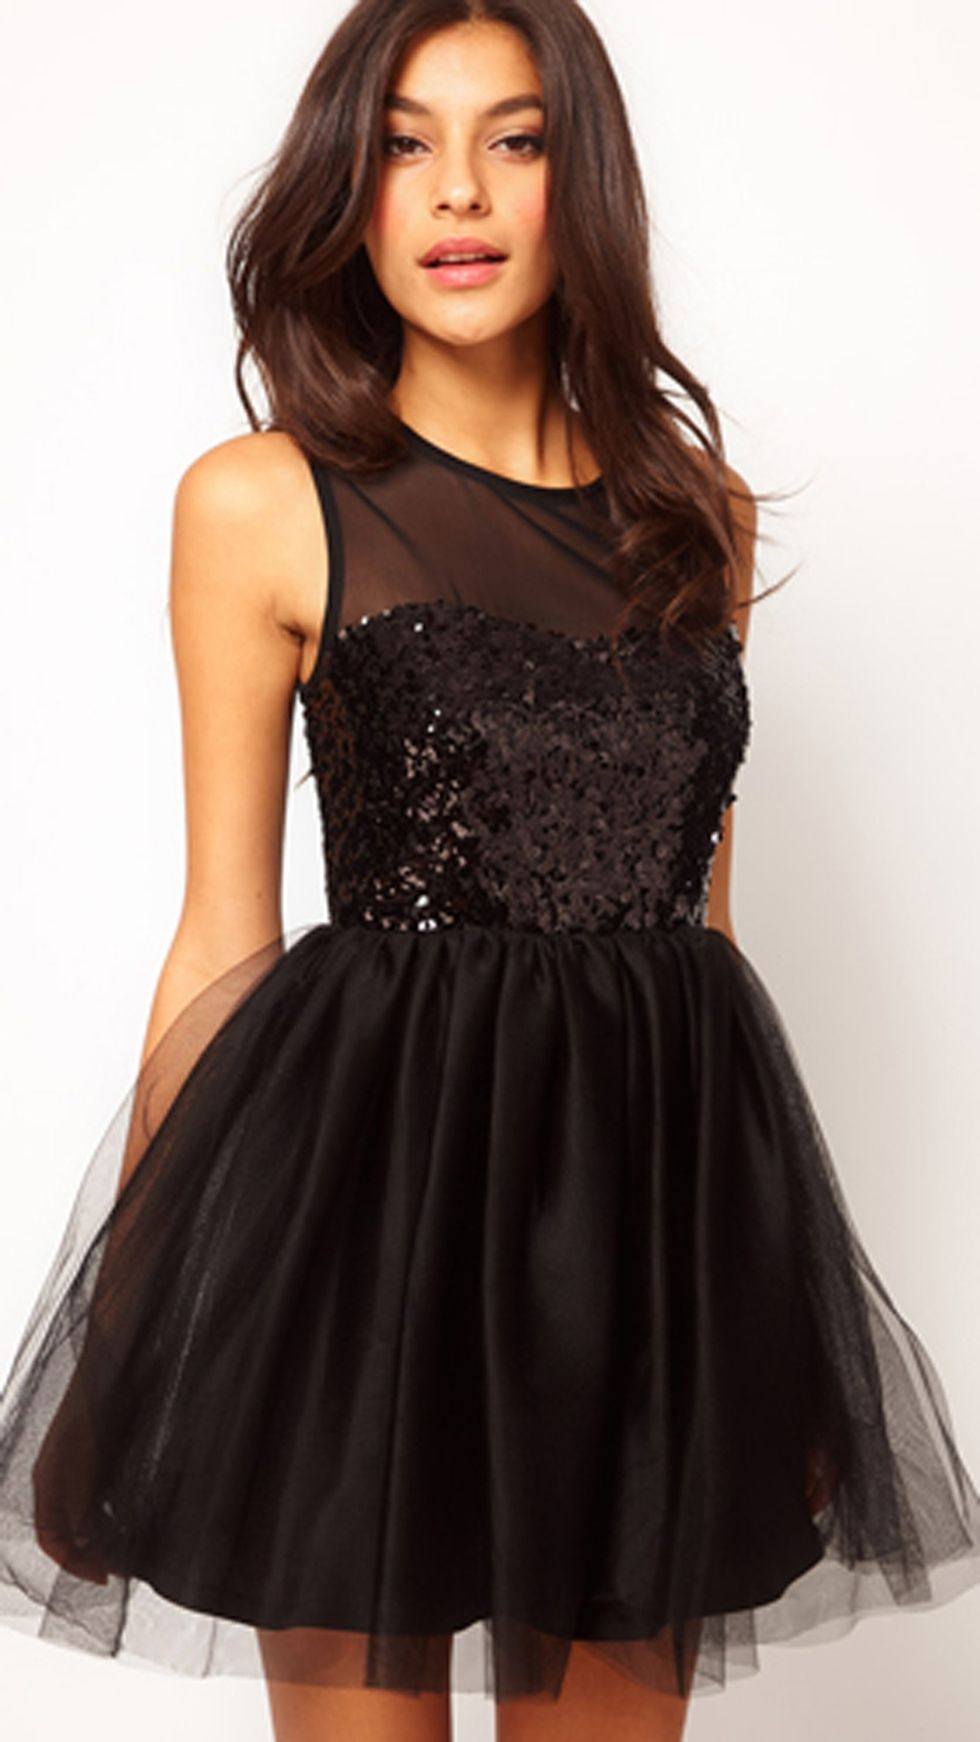 Holiday Party Dresses - Sexy Holiday Party Dresses Under 100 | Ara ...